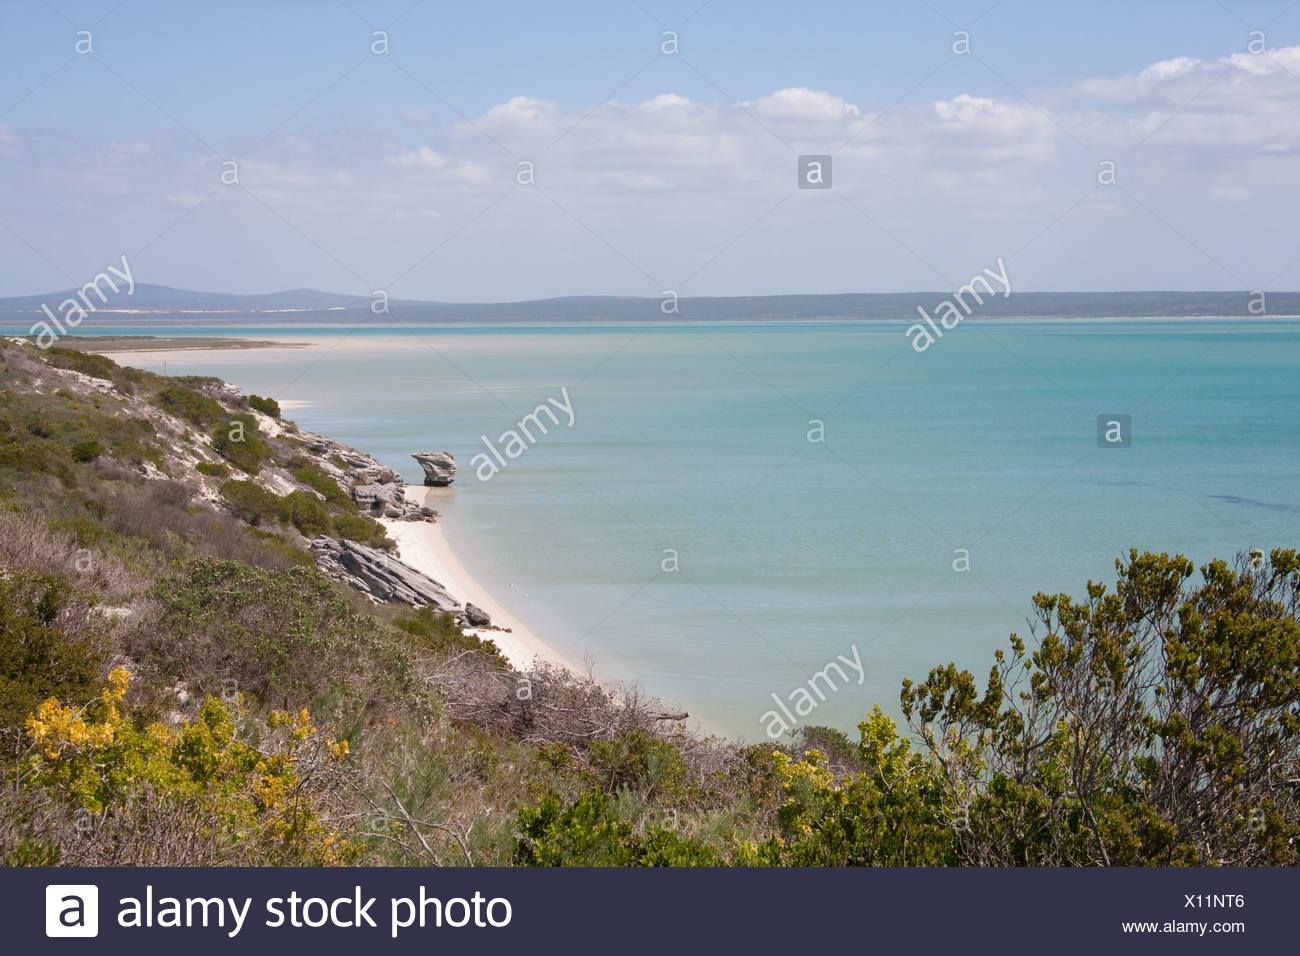 The Preekstoel rock formation on the beach at Kraal Bay in the Langebaan Lagoon near Saldanha Bay, Western Cape, South Africa - Stock Image